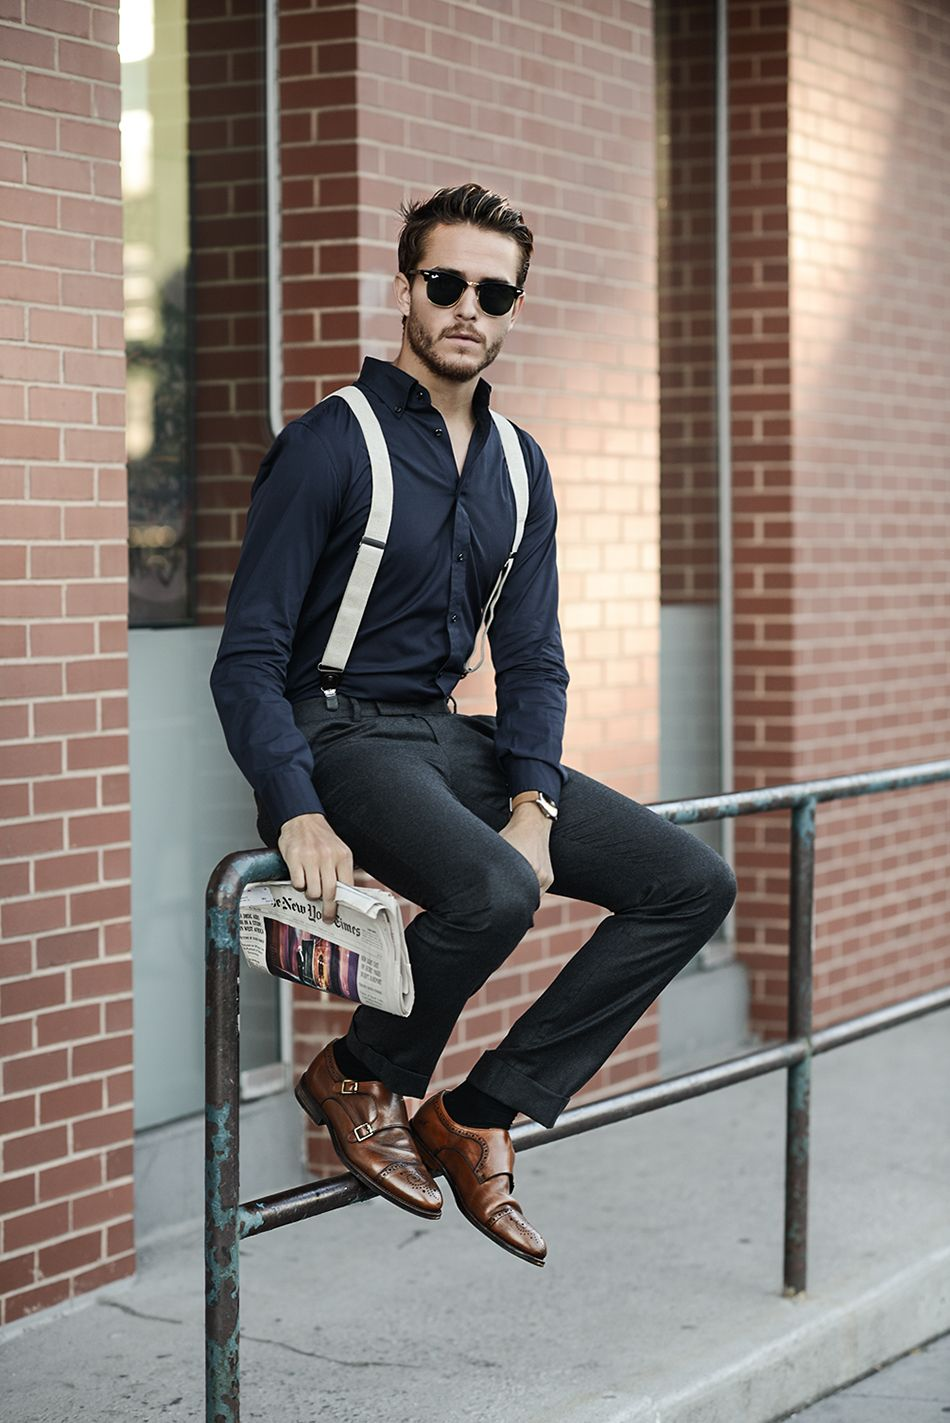 Men S Navy Dress Shirt Charcoal Dress Pants Brown Leather Double Monks Black Sunglasses Hipster Mens Fashion Mens Outfits Suspenders Outfit [ 1423 x 950 Pixel ]